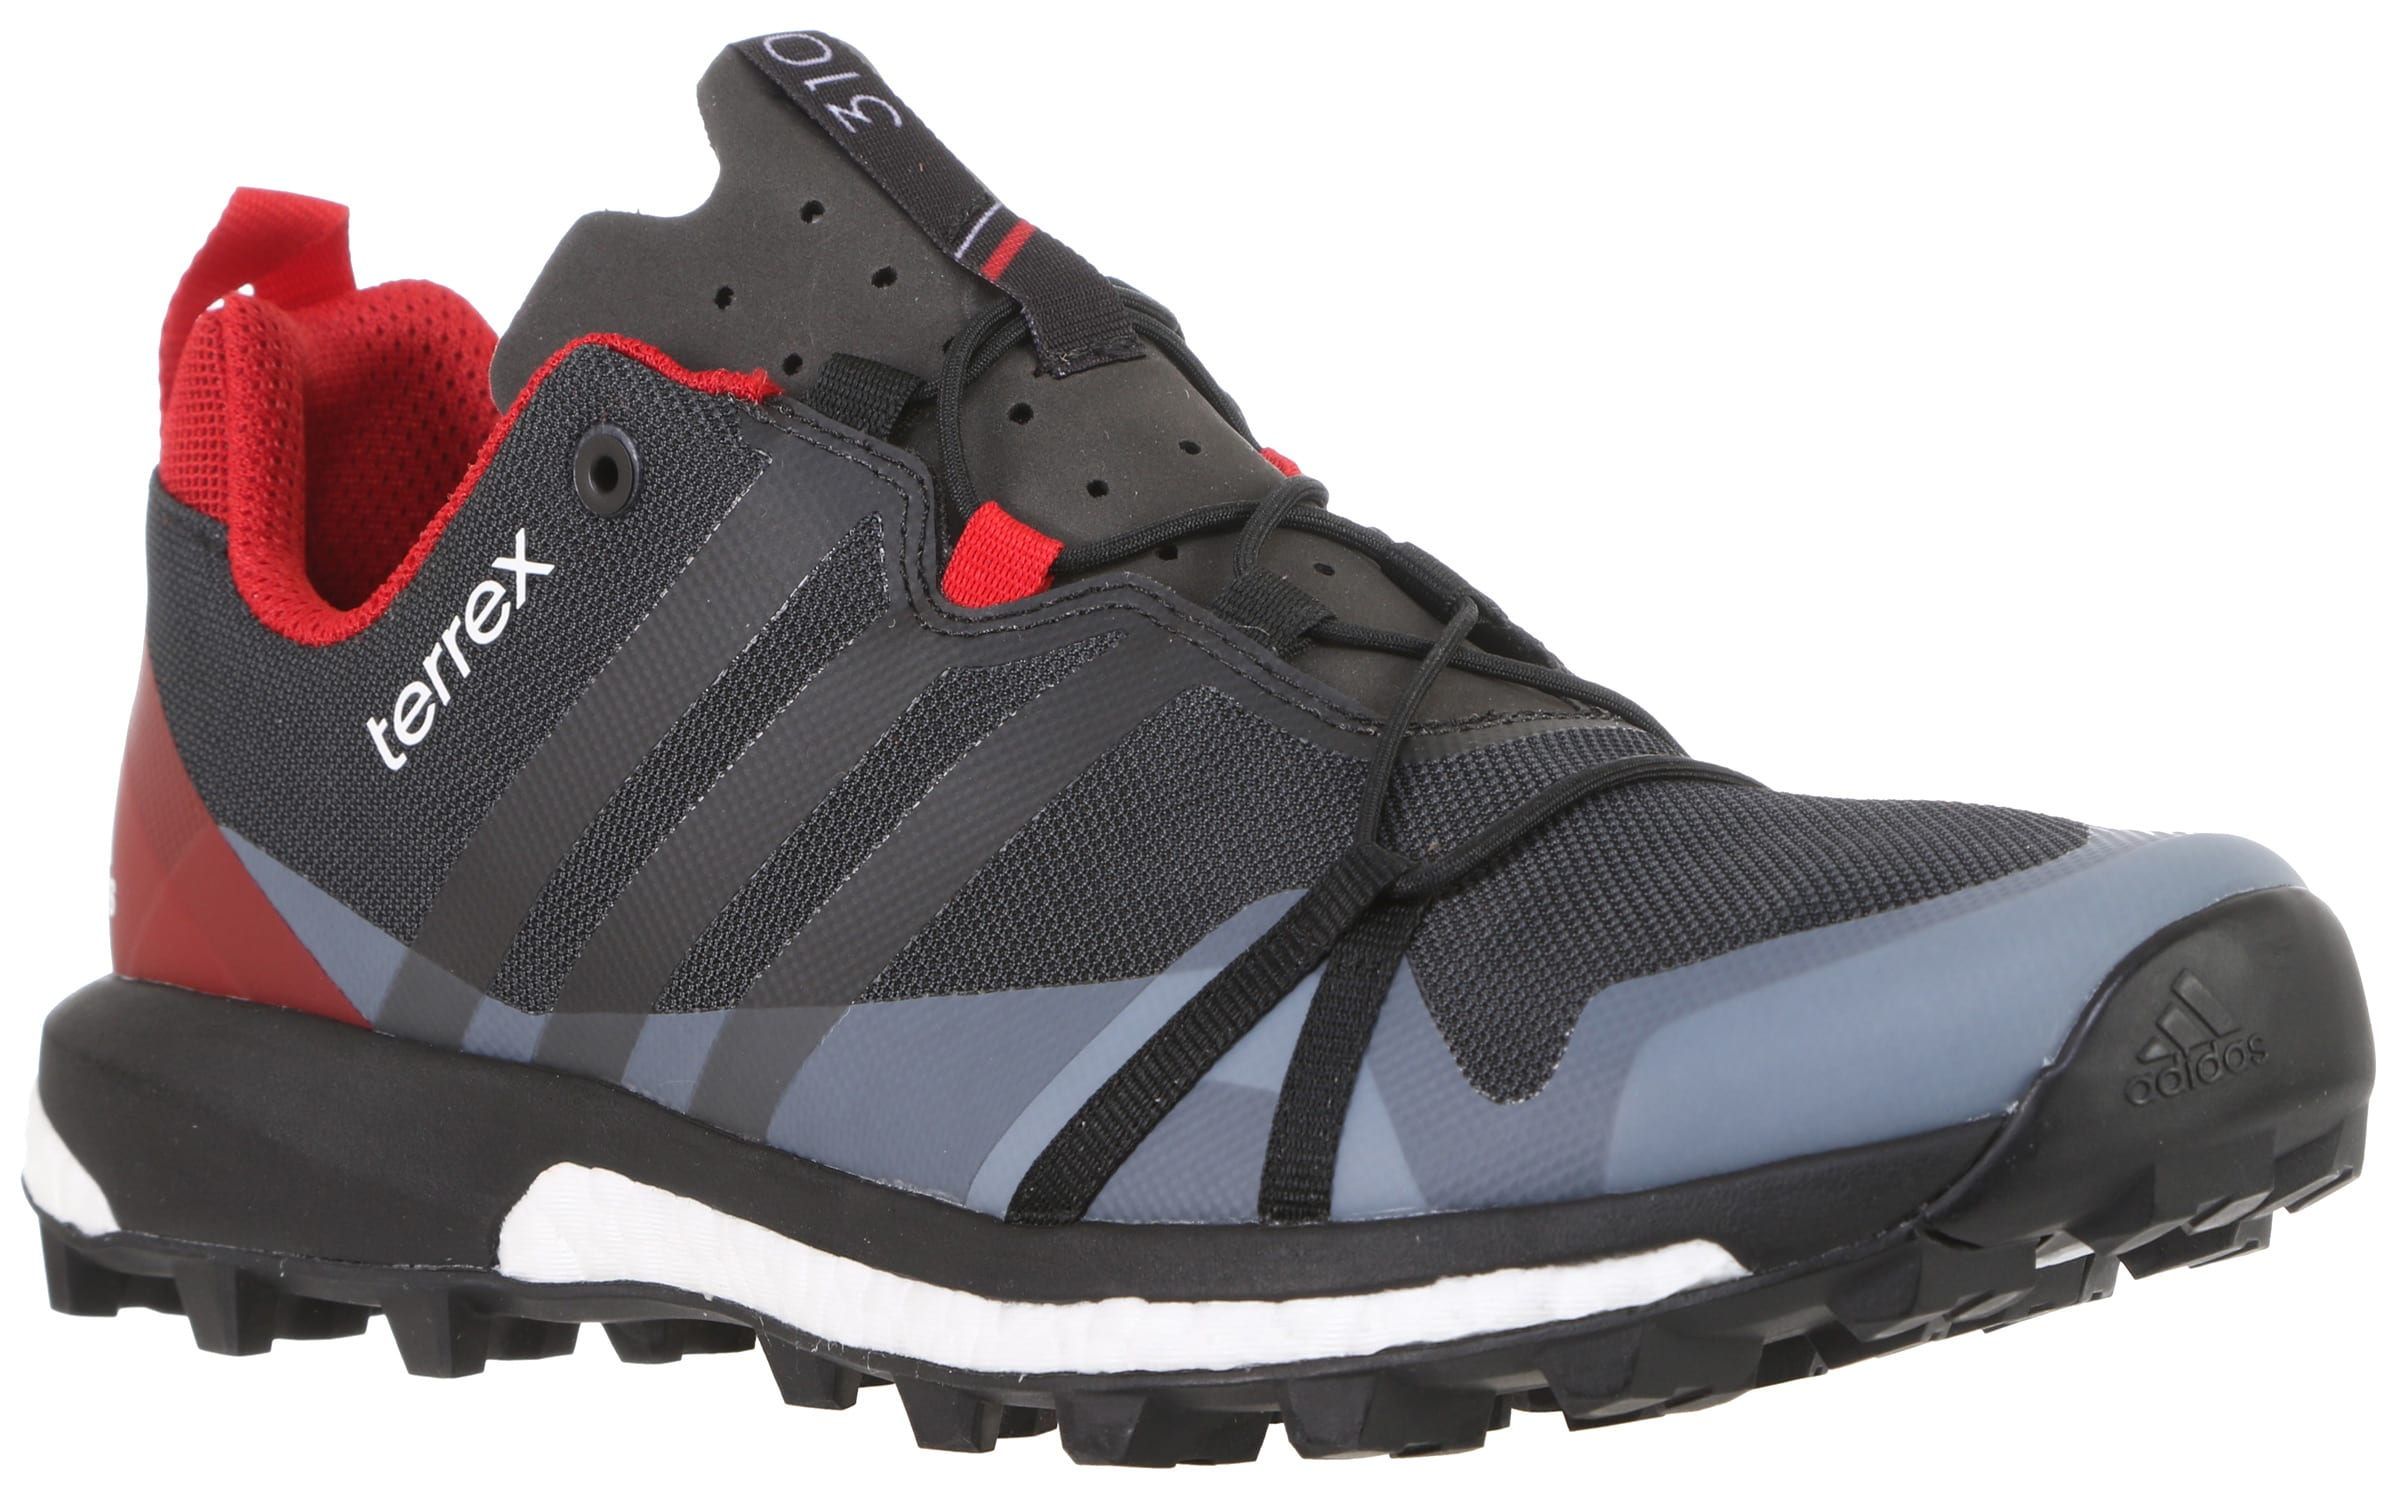 adidas Terrex Agravic Men's Outdoor Trail Running Shoes Sz